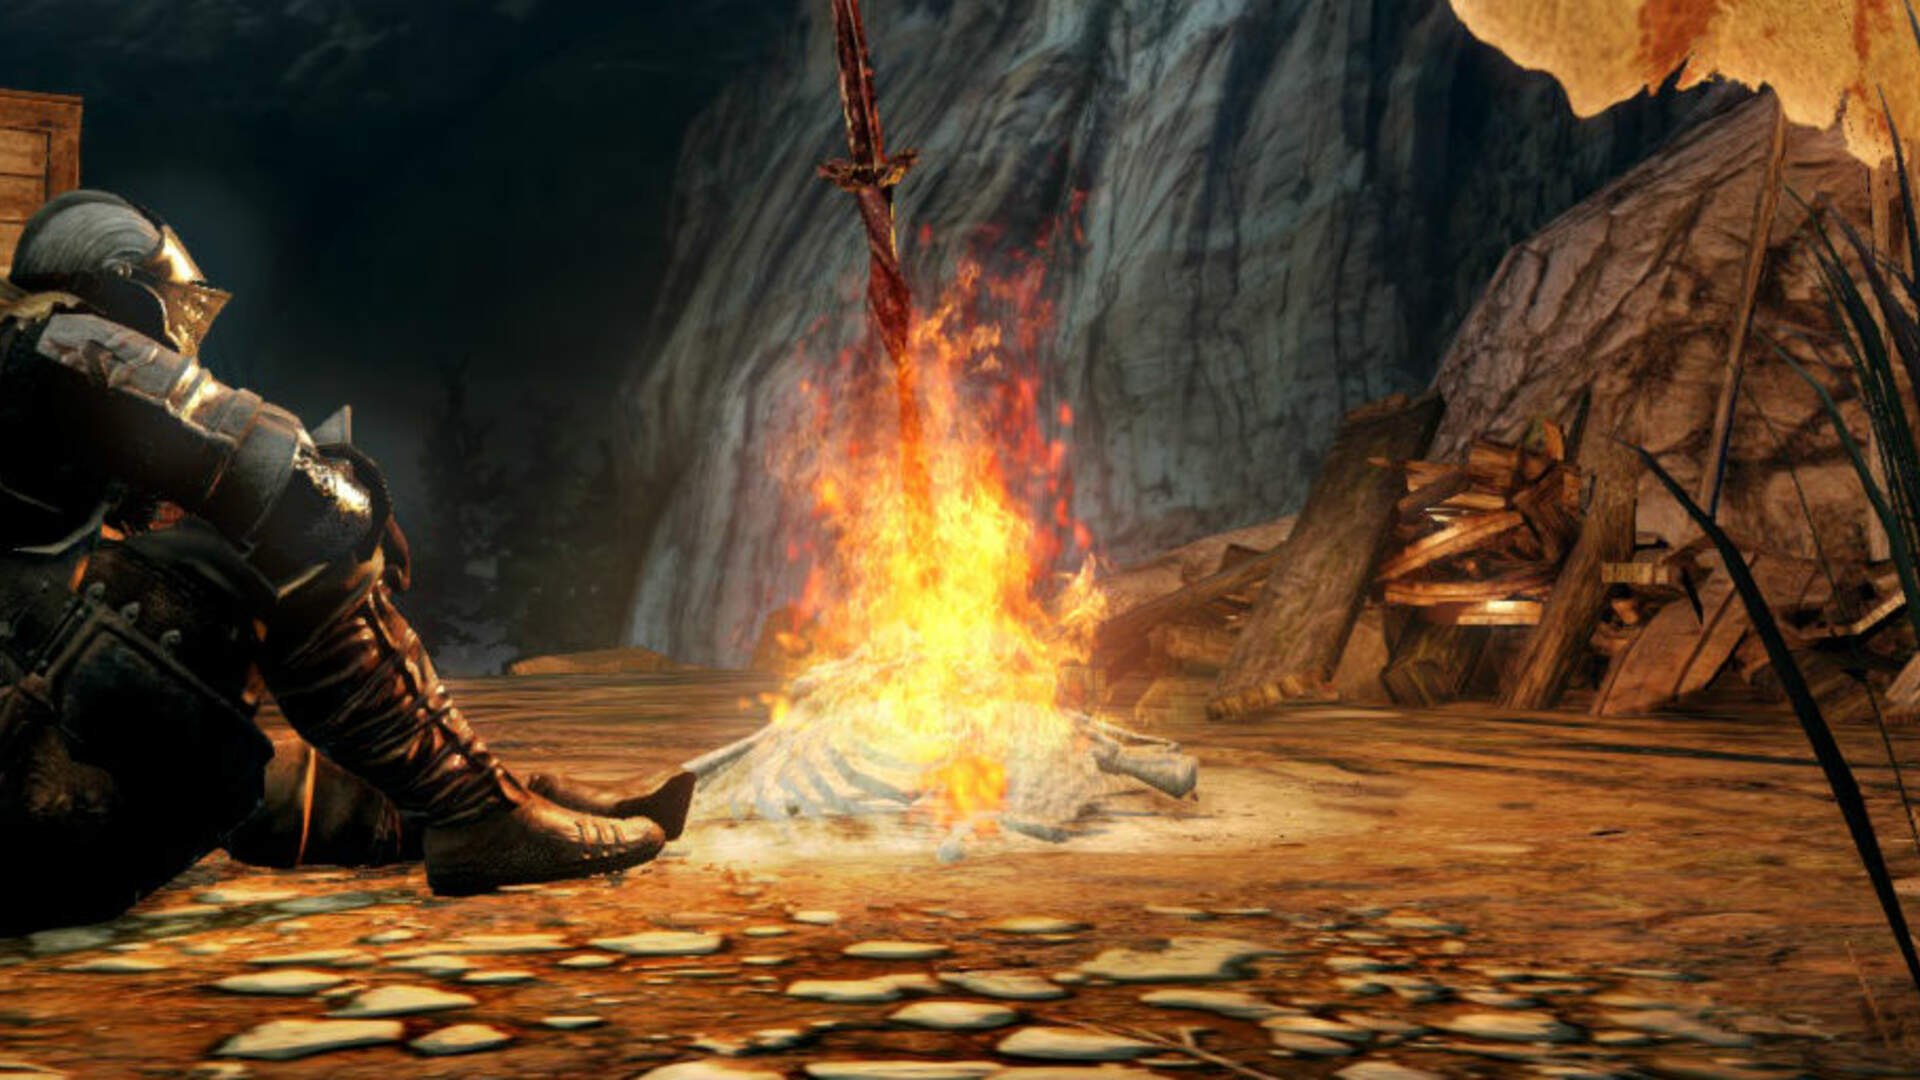 Dark Souls 2 Guide: Huntsman's Copse, and the Journey to the Undead Purgatory